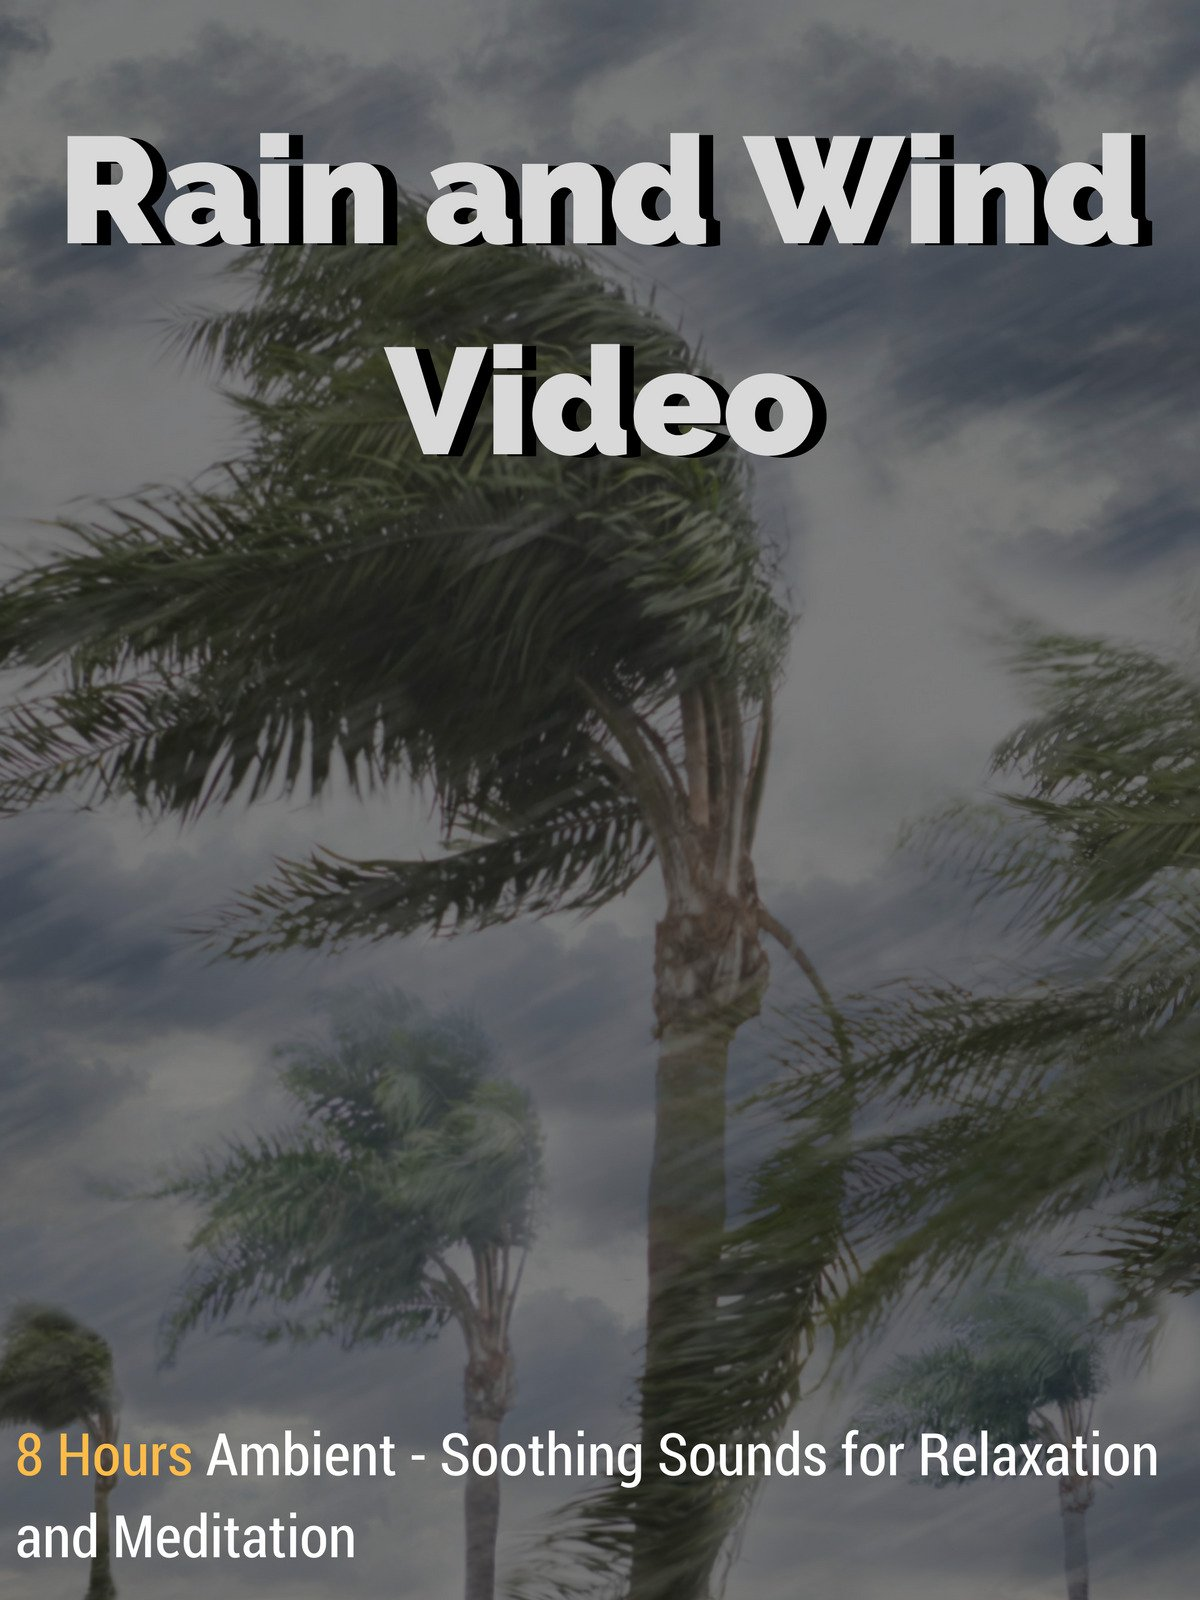 Rain and Wind Video